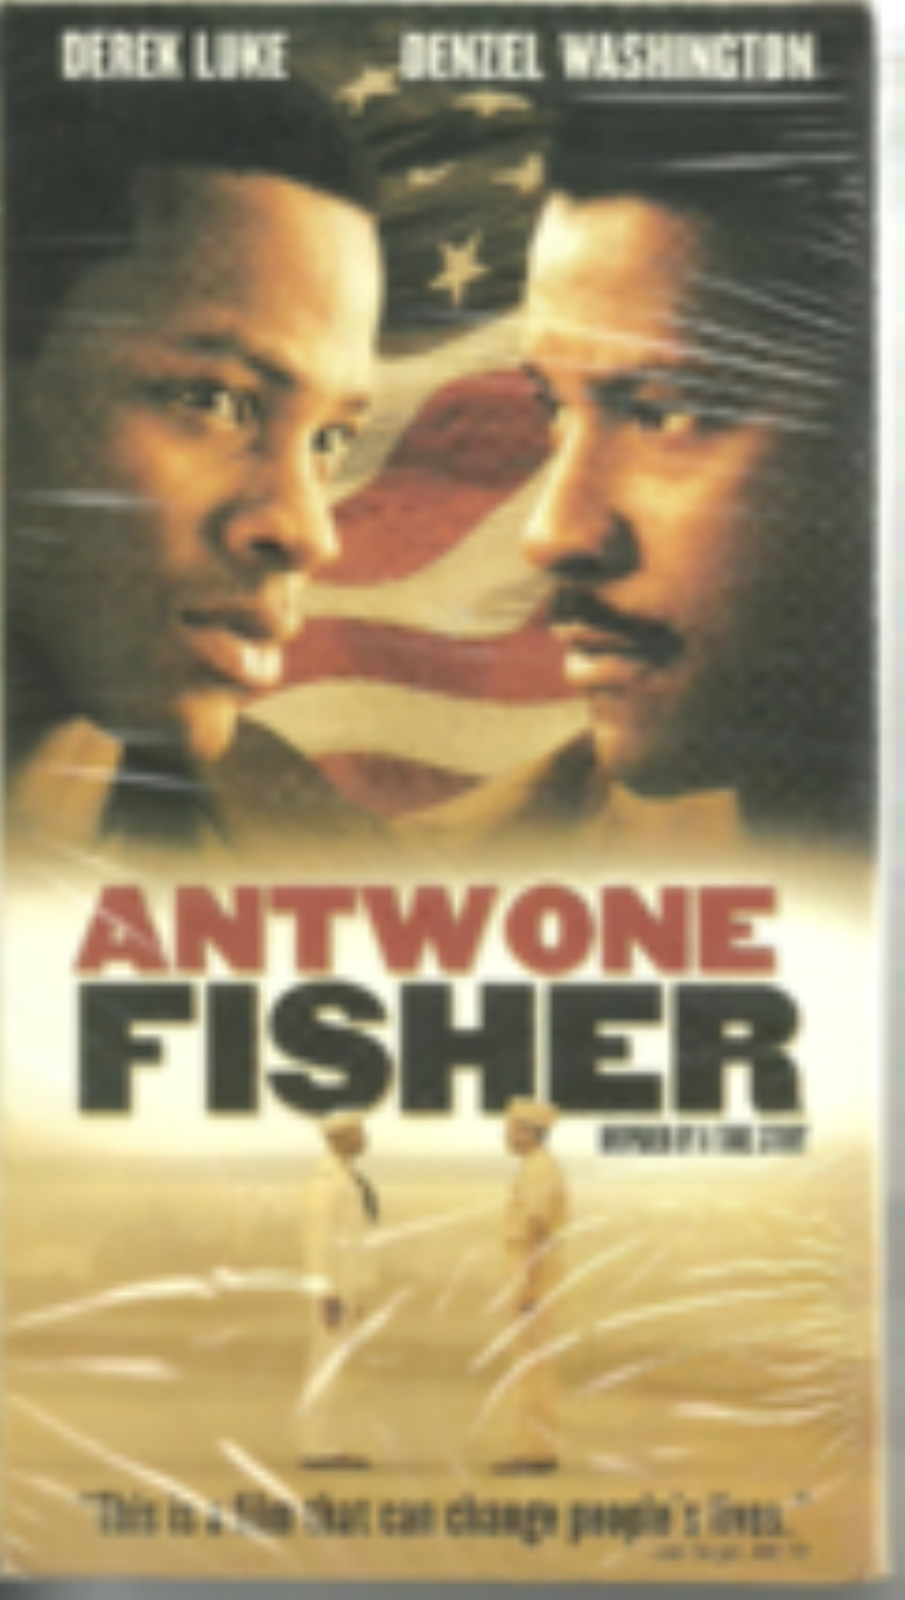 Antwone Fisher Vhs